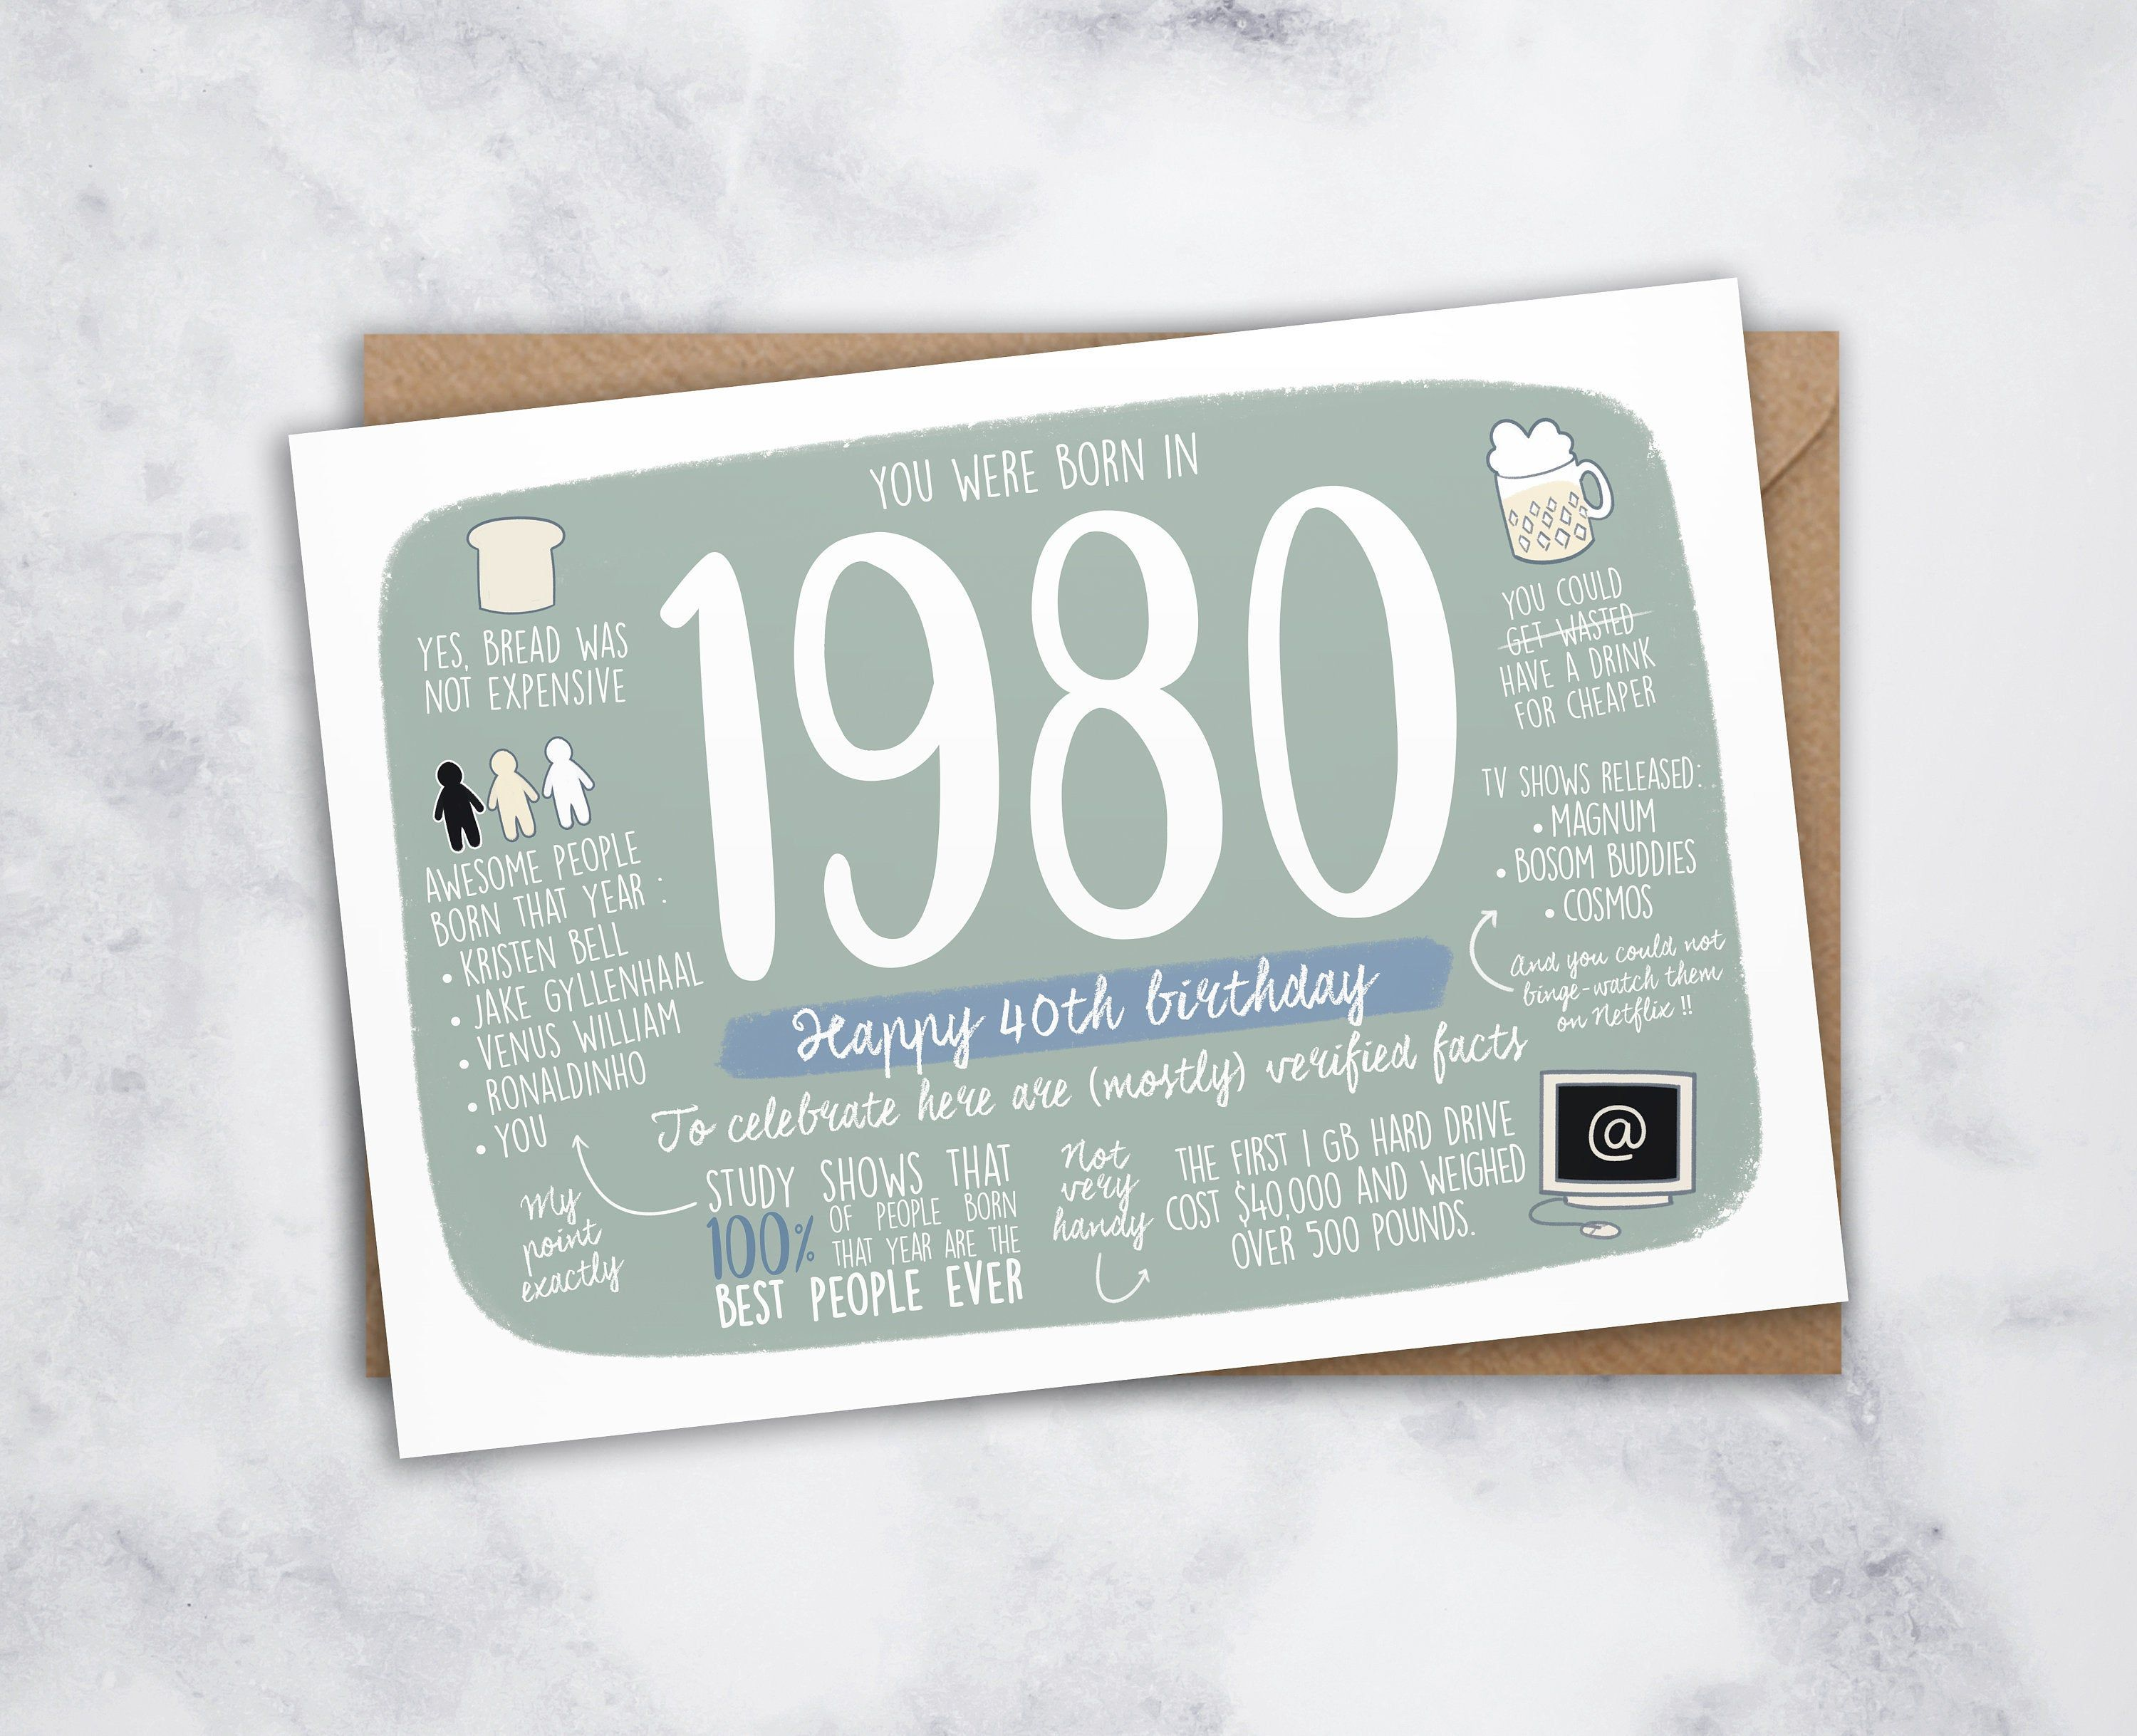 Carte Anniversaire 40 Ans Joyeux Anniversaire 1980 Birthday Card Carte D Anniversaire Bon Anniversaire 40th Birthday Cards Get Well Messages Happy 40th Birthday